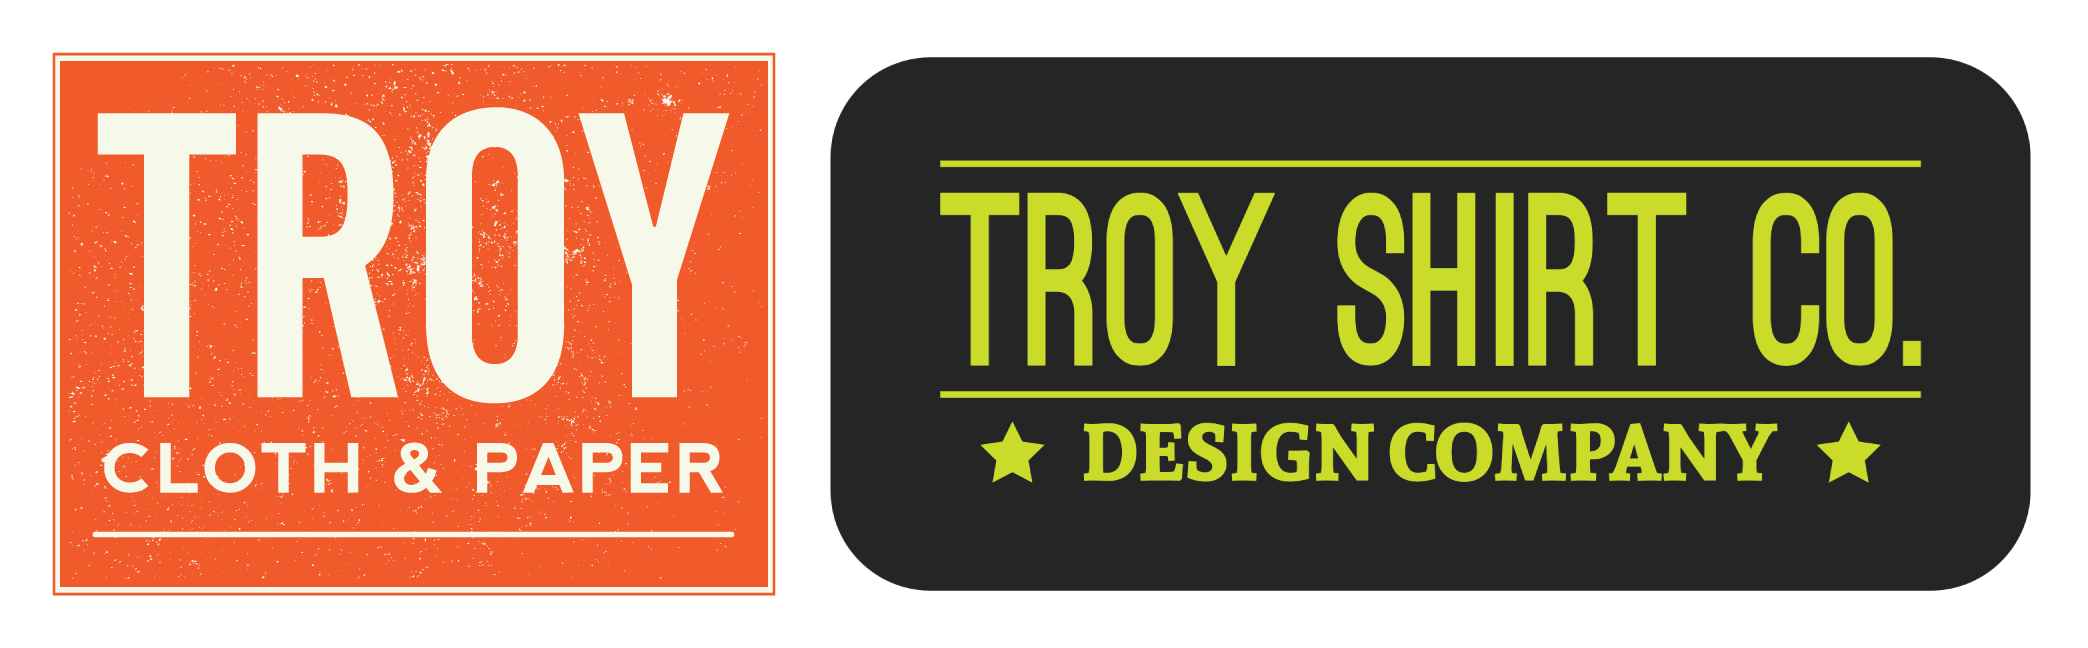 Troy Cloth & Paper | Troy Shirt Co.